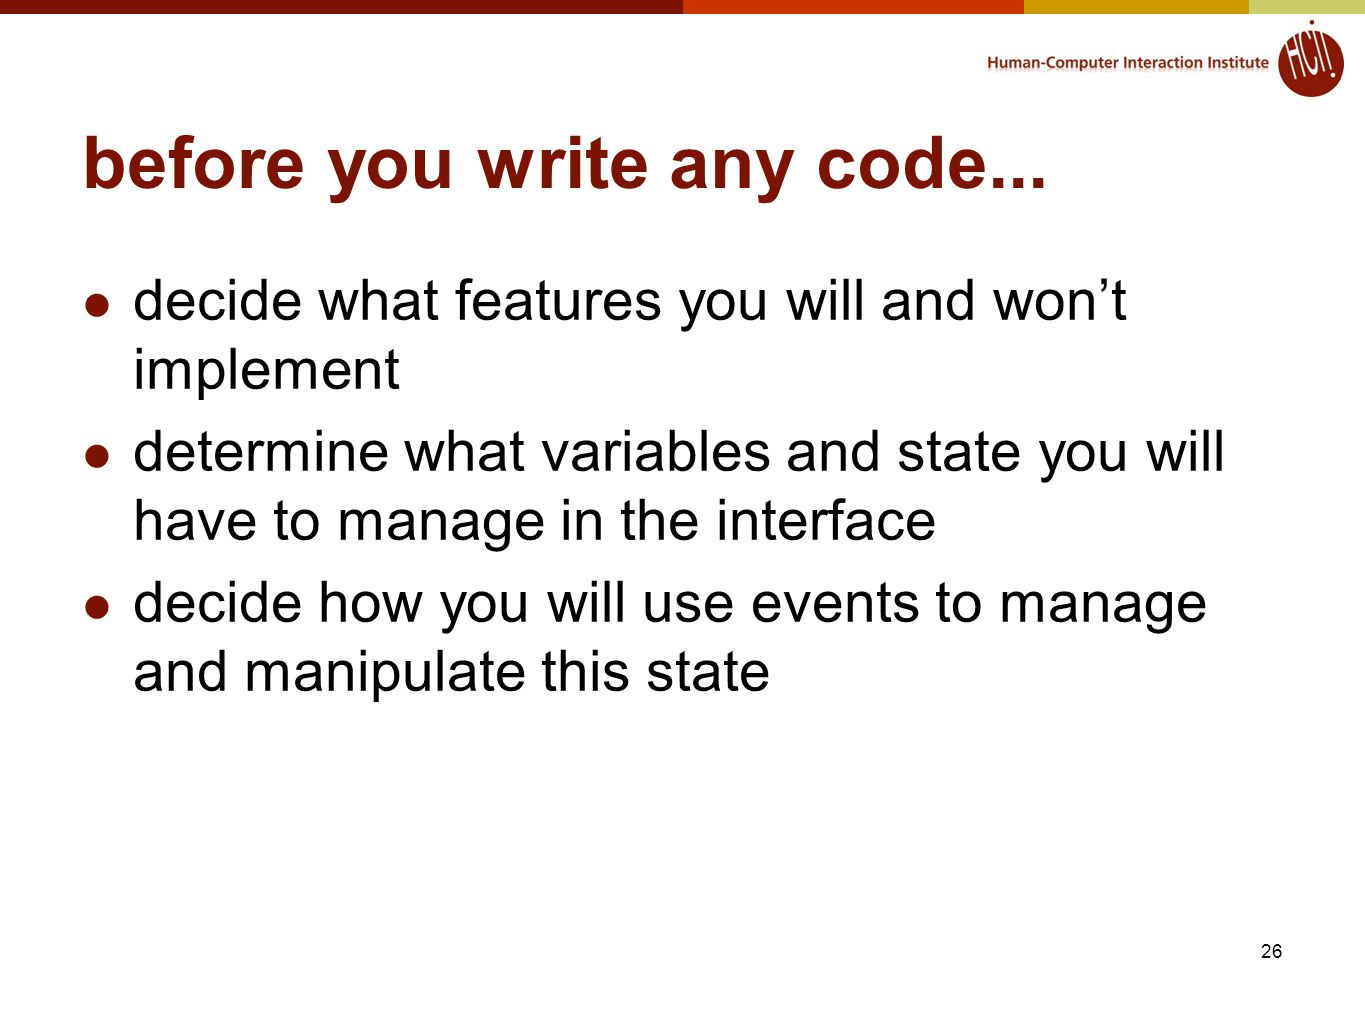 before you write any code...